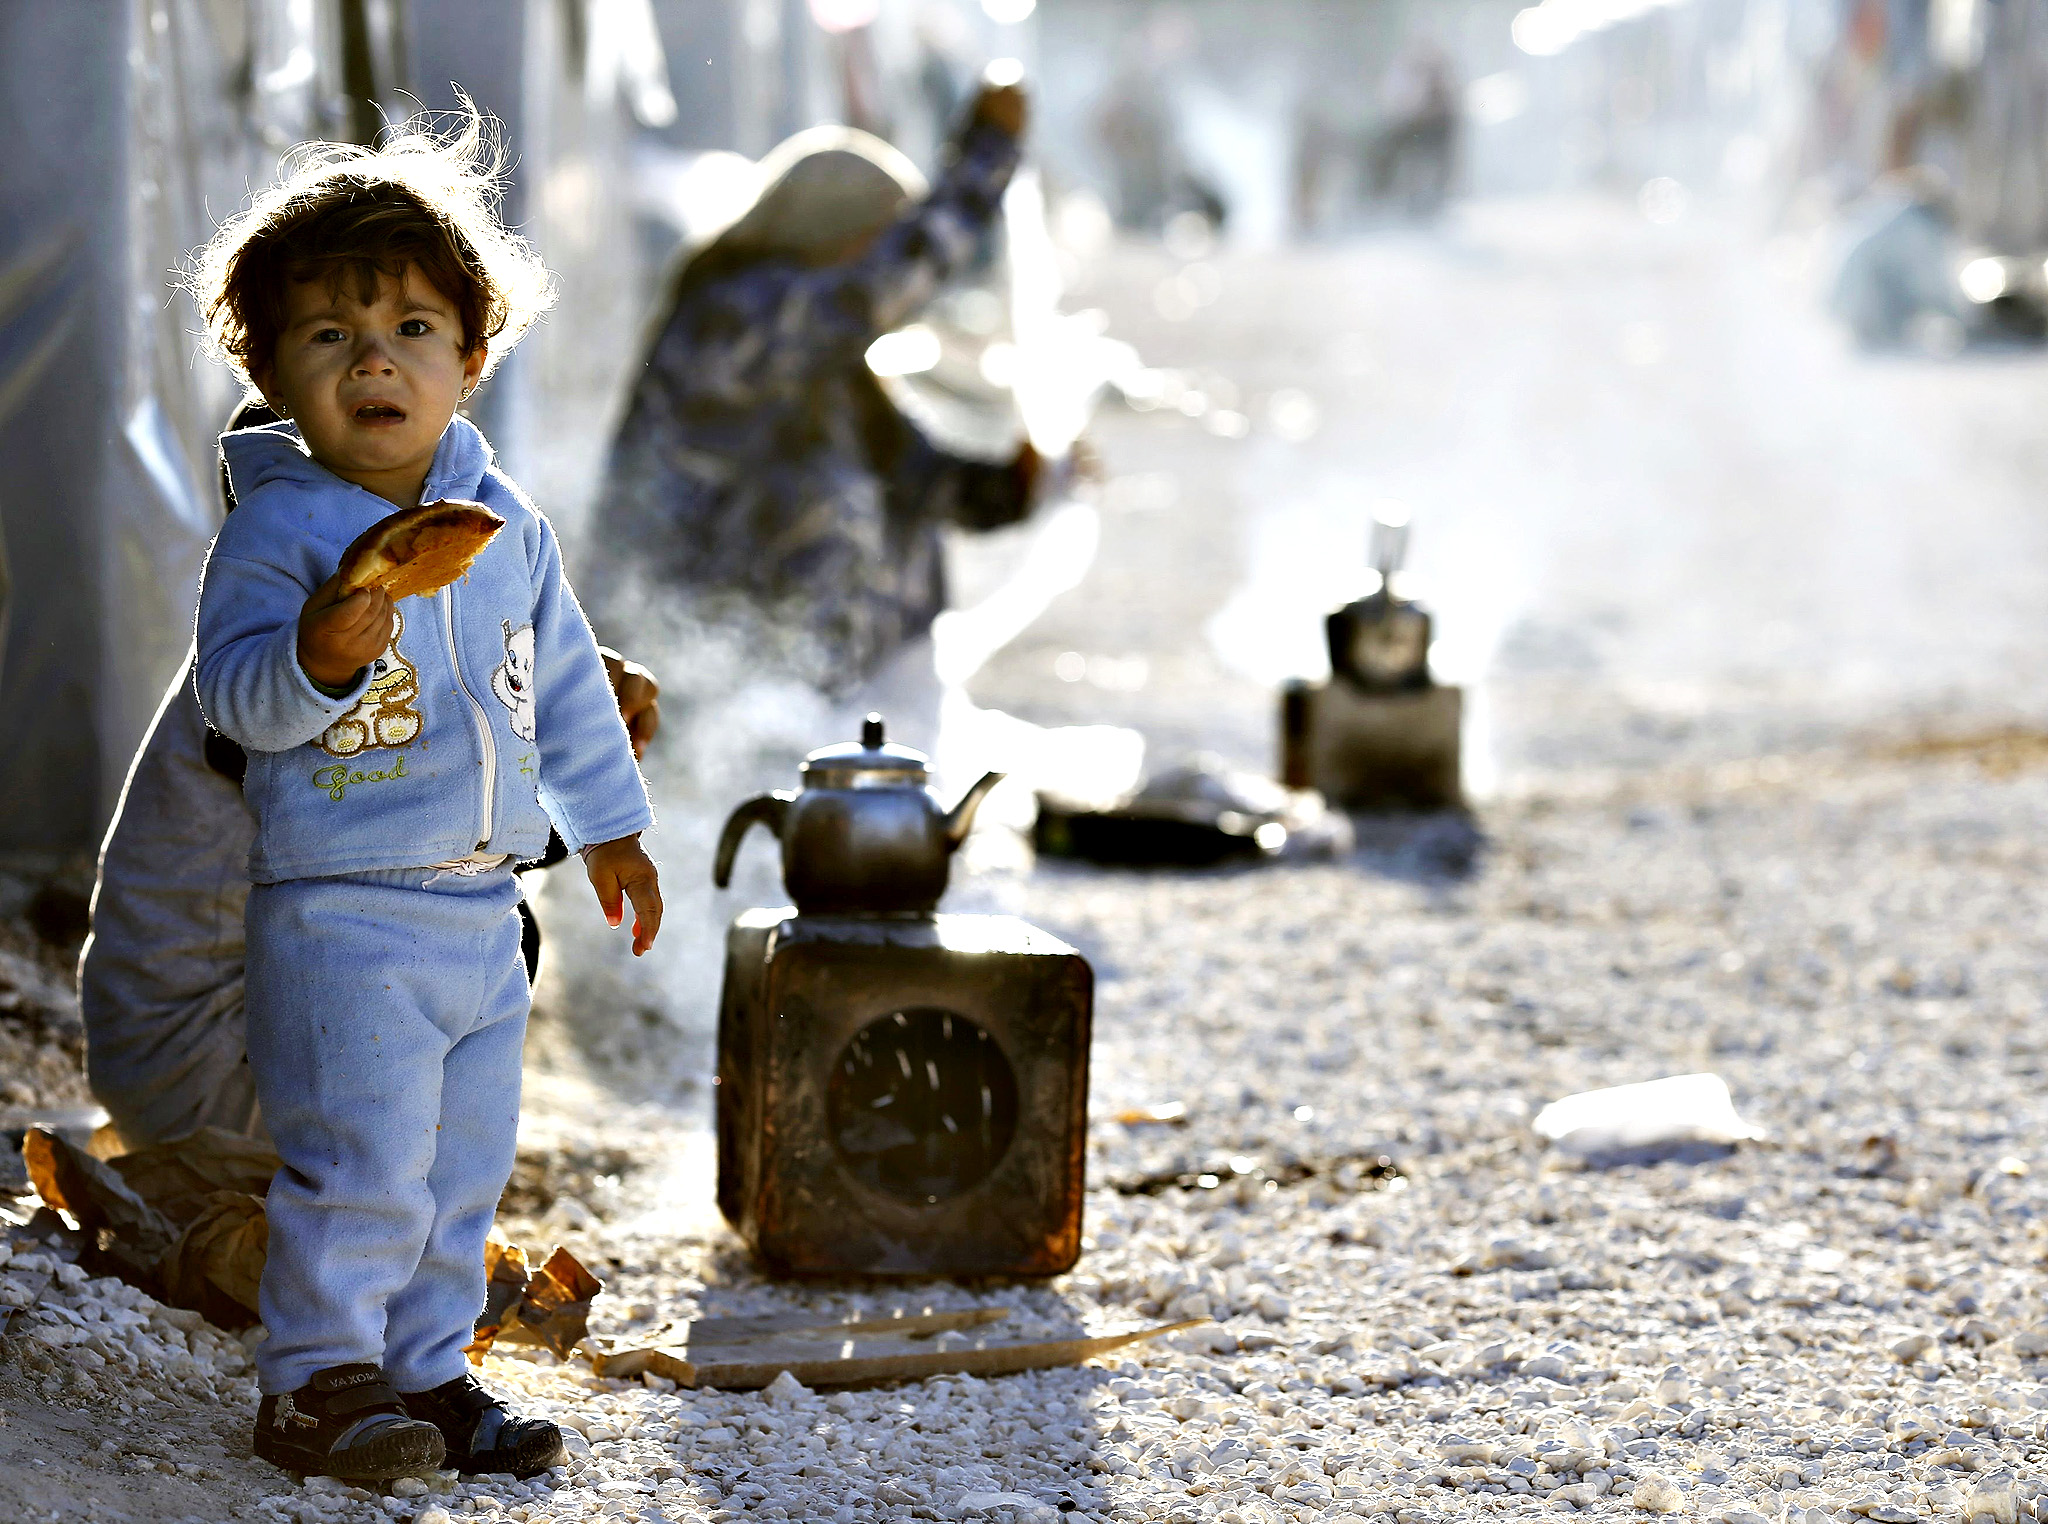 A Kurdish refugee child from the Syrian town of Kobani holds a bread in a camp in the southeastern town of Suruc, Sanliurfa province on October 20, 2014. The U.S. military said it had air-dropped arms to Syrian rebels fighting Islamic State militants near Kobani on Sunday in what appeared to be the Pentagon's first public acknowledgment it has delivered lethal aid to the rebels.